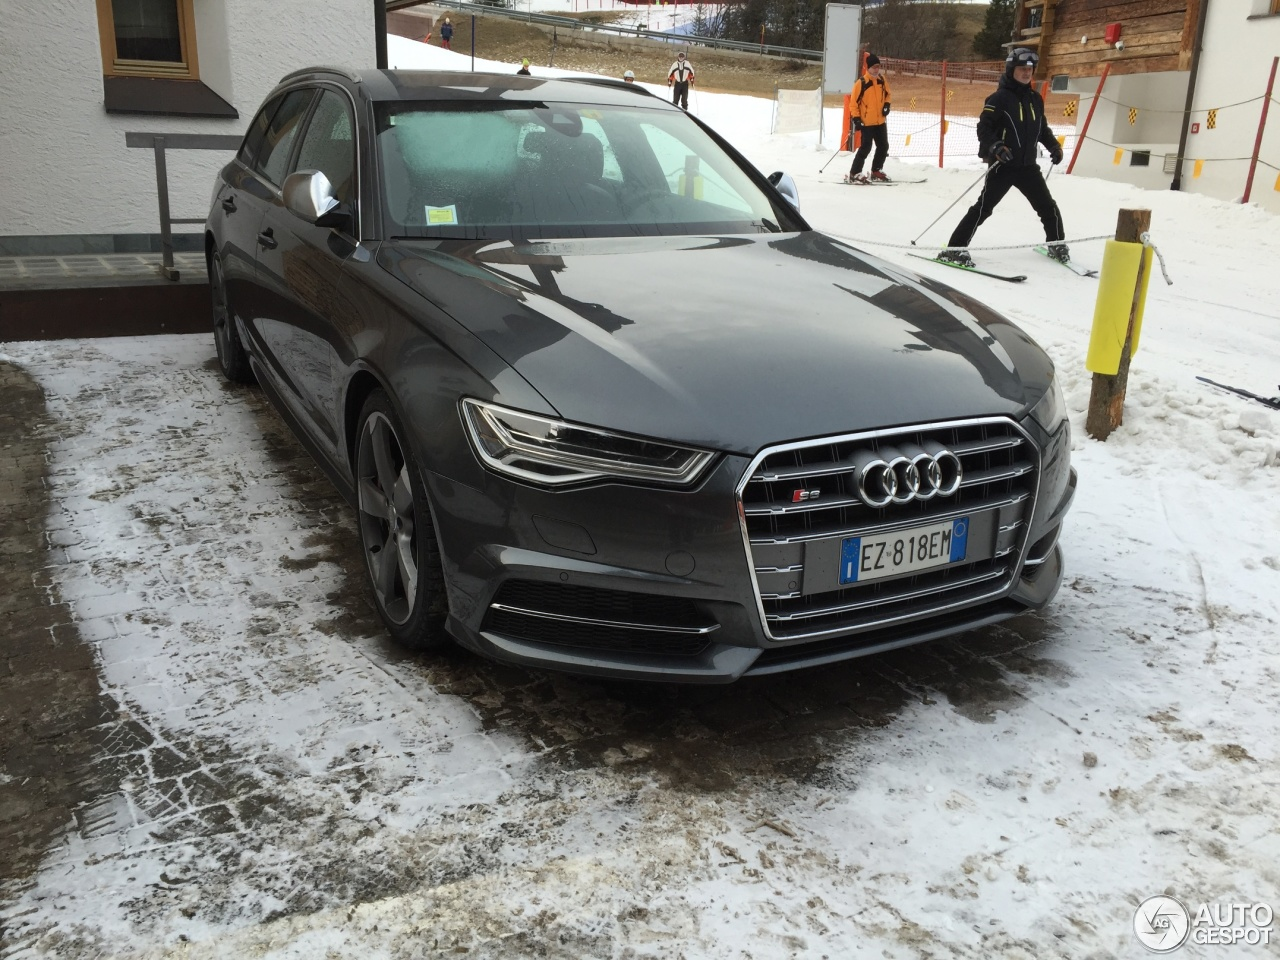 Audi s6 avant c7 2015 3 january 2016 autogespot for Lunghezza audi a6 avant 2016